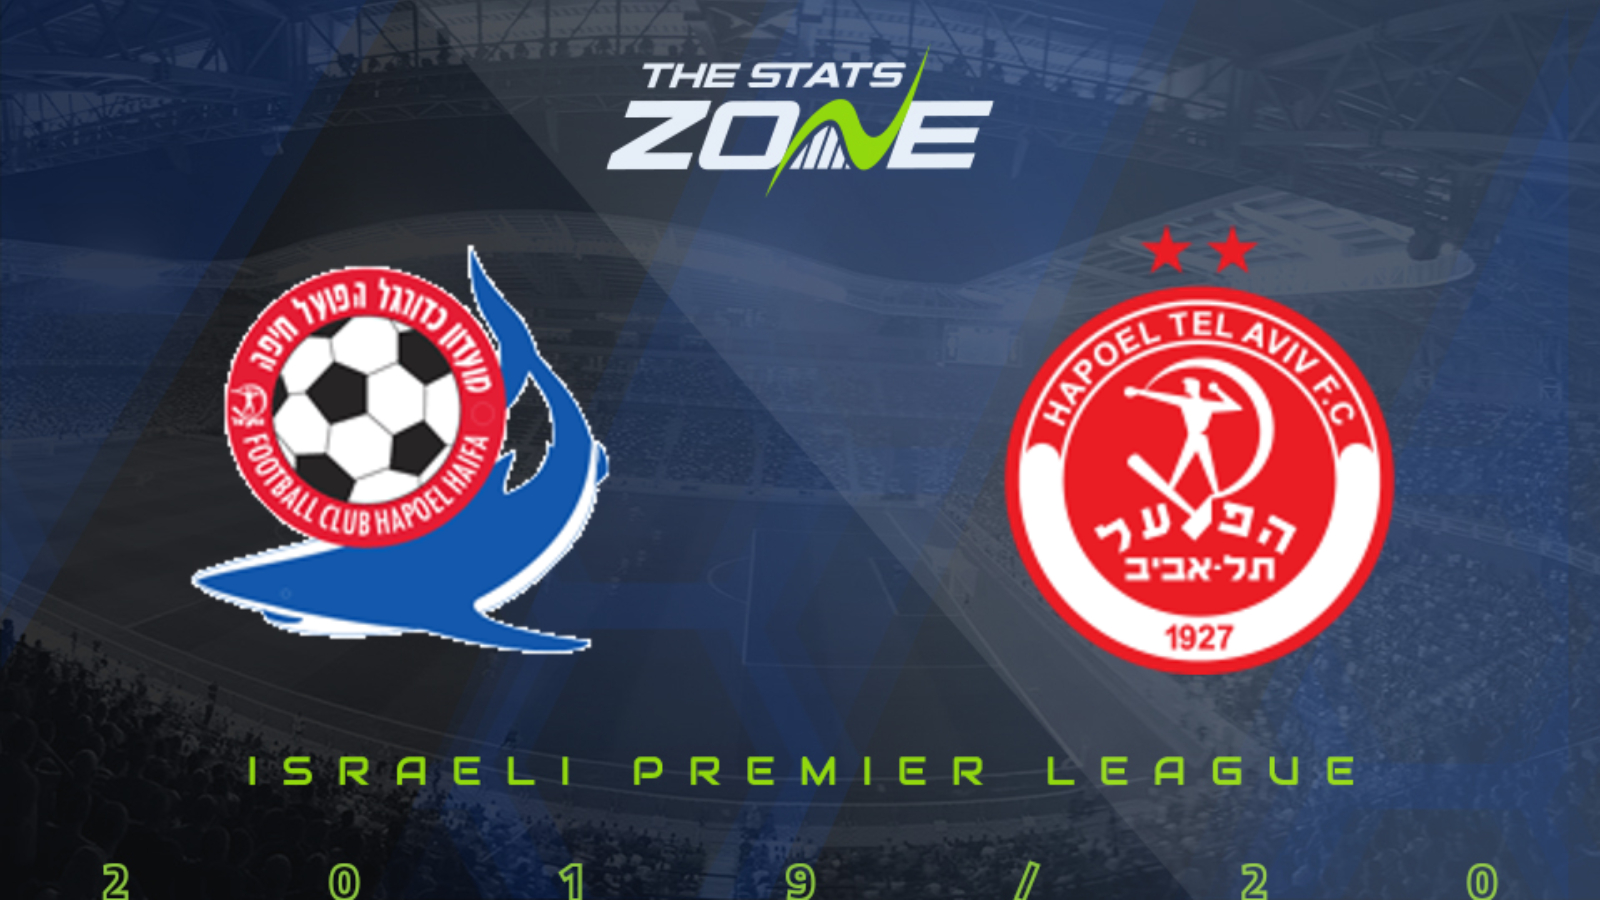 Hapoel beer sheva vs hapoel haifa betting tips leixoes vs rio ave betting expert soccer